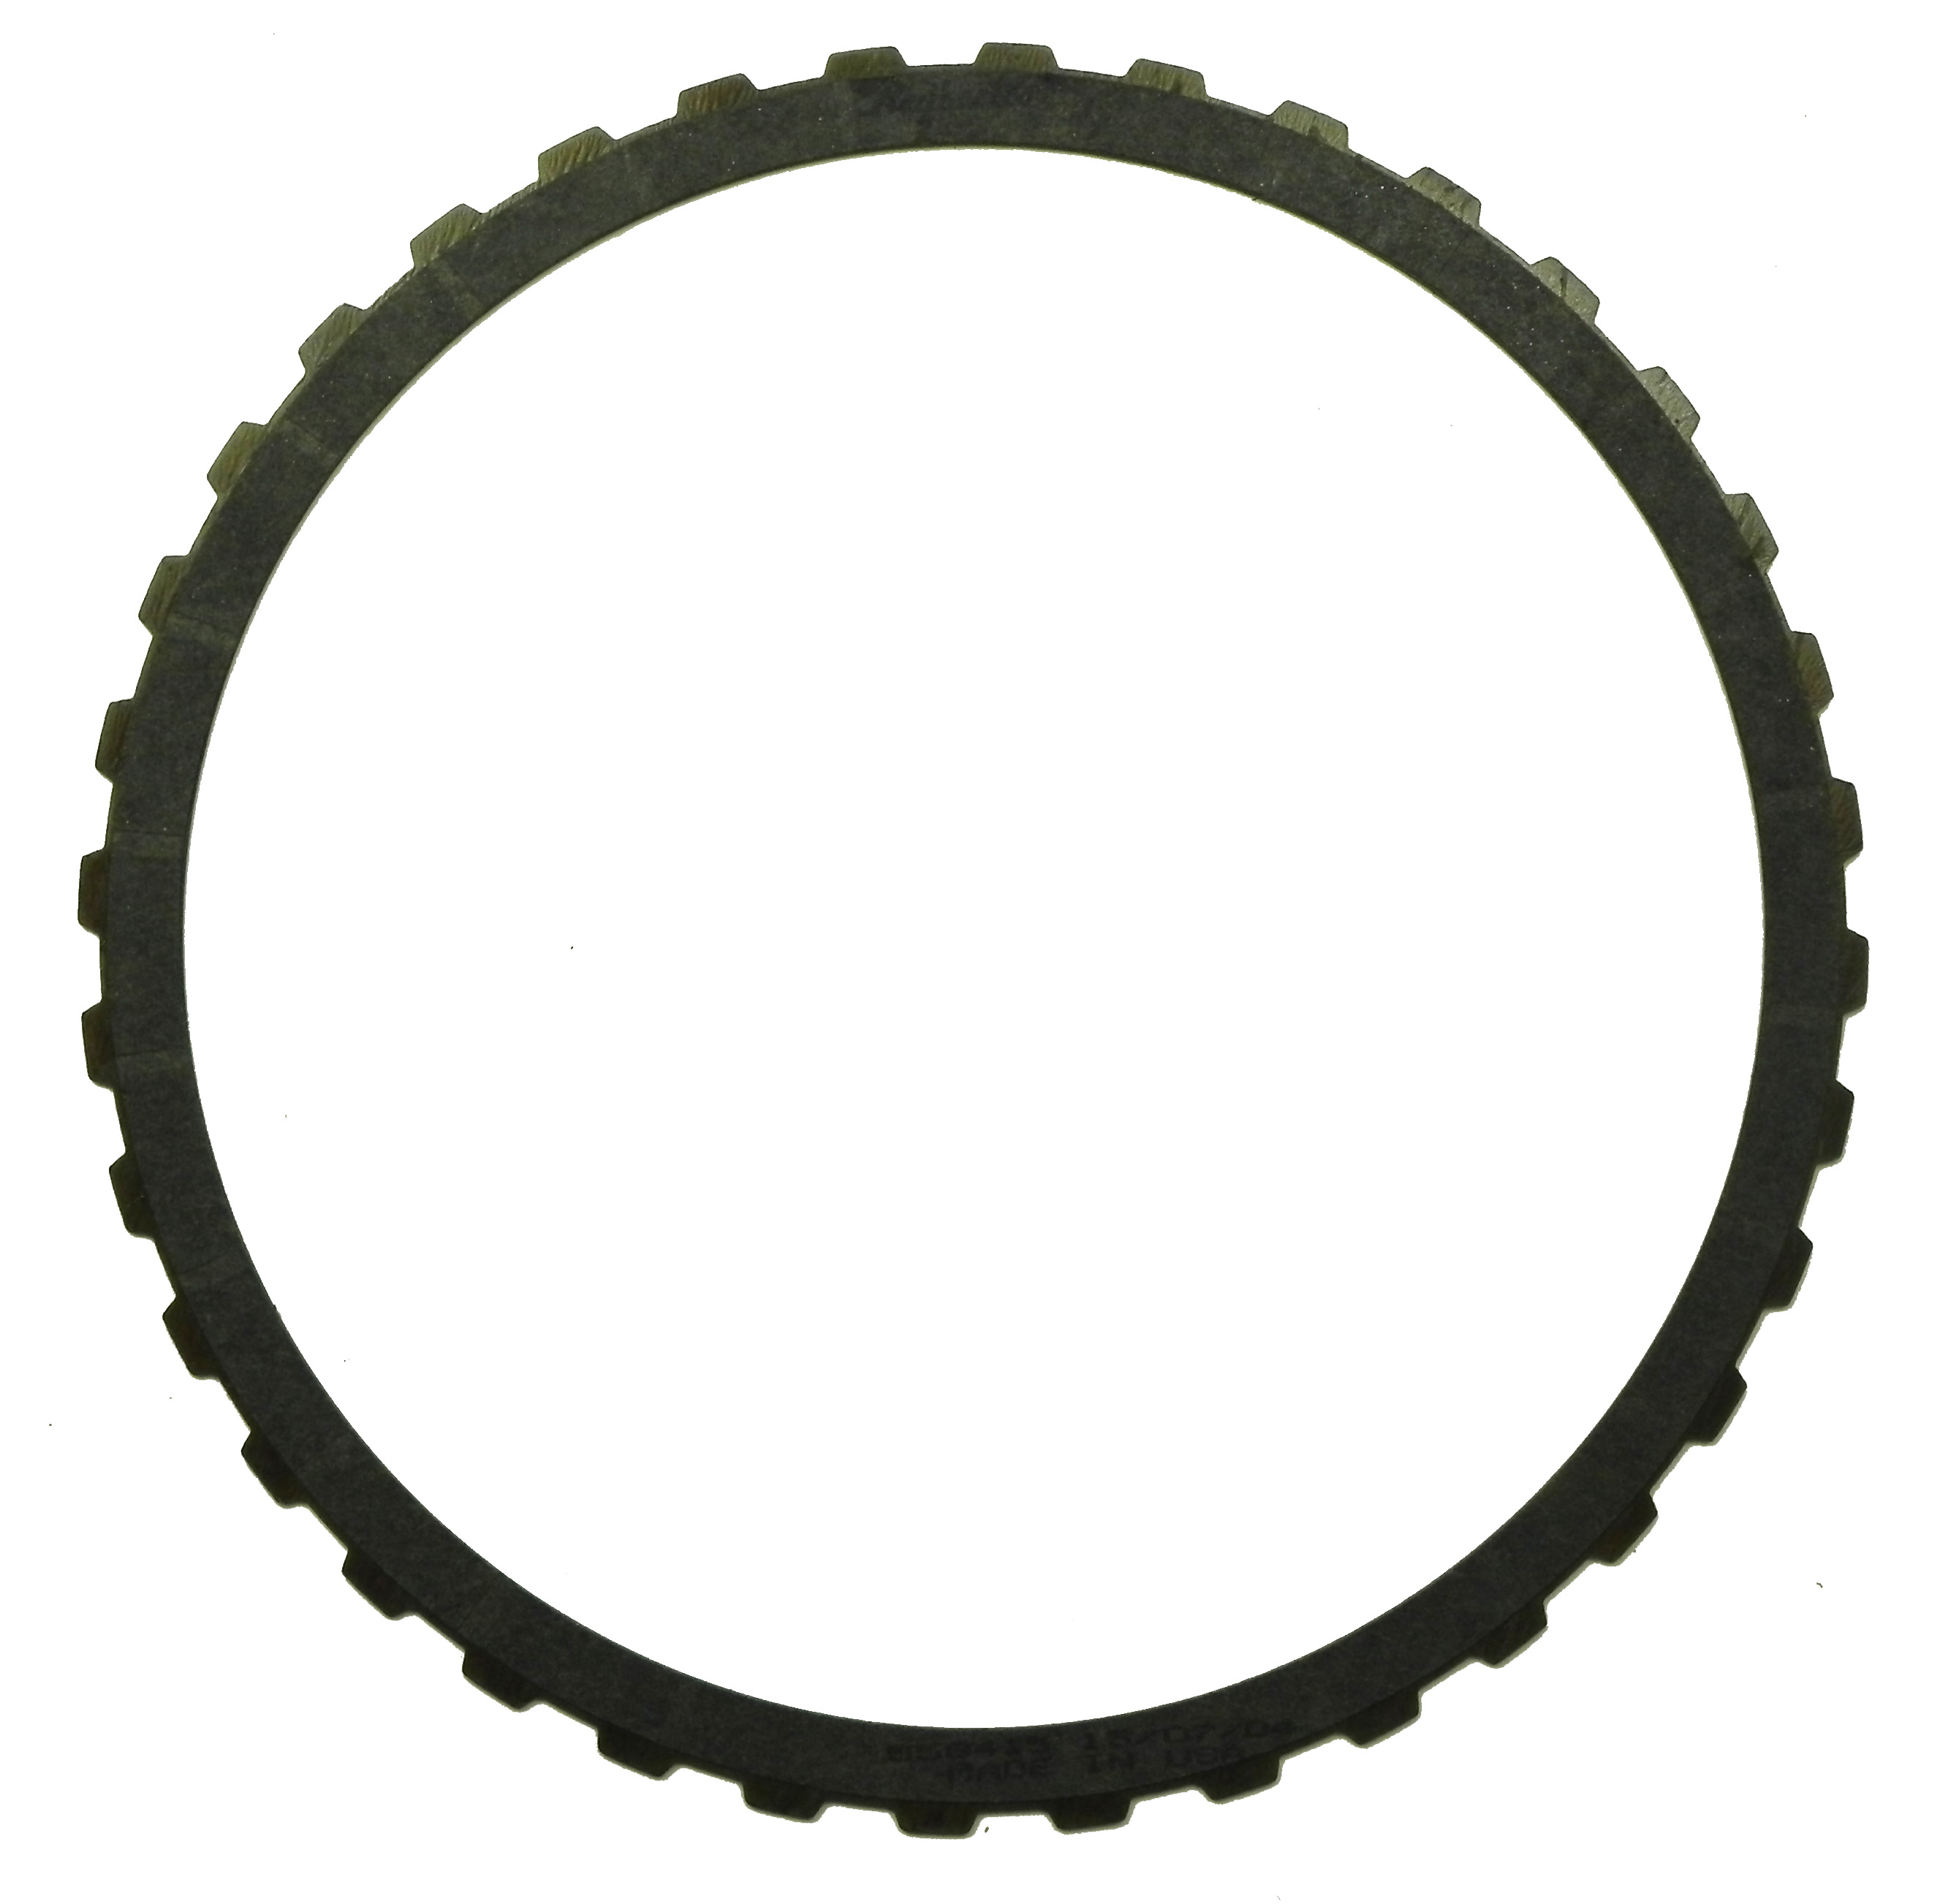 R558415 | 1999-ON Friction Clutch Plate High Energy Reverse, Overdrive, Single Sided, OD Spline High Energy